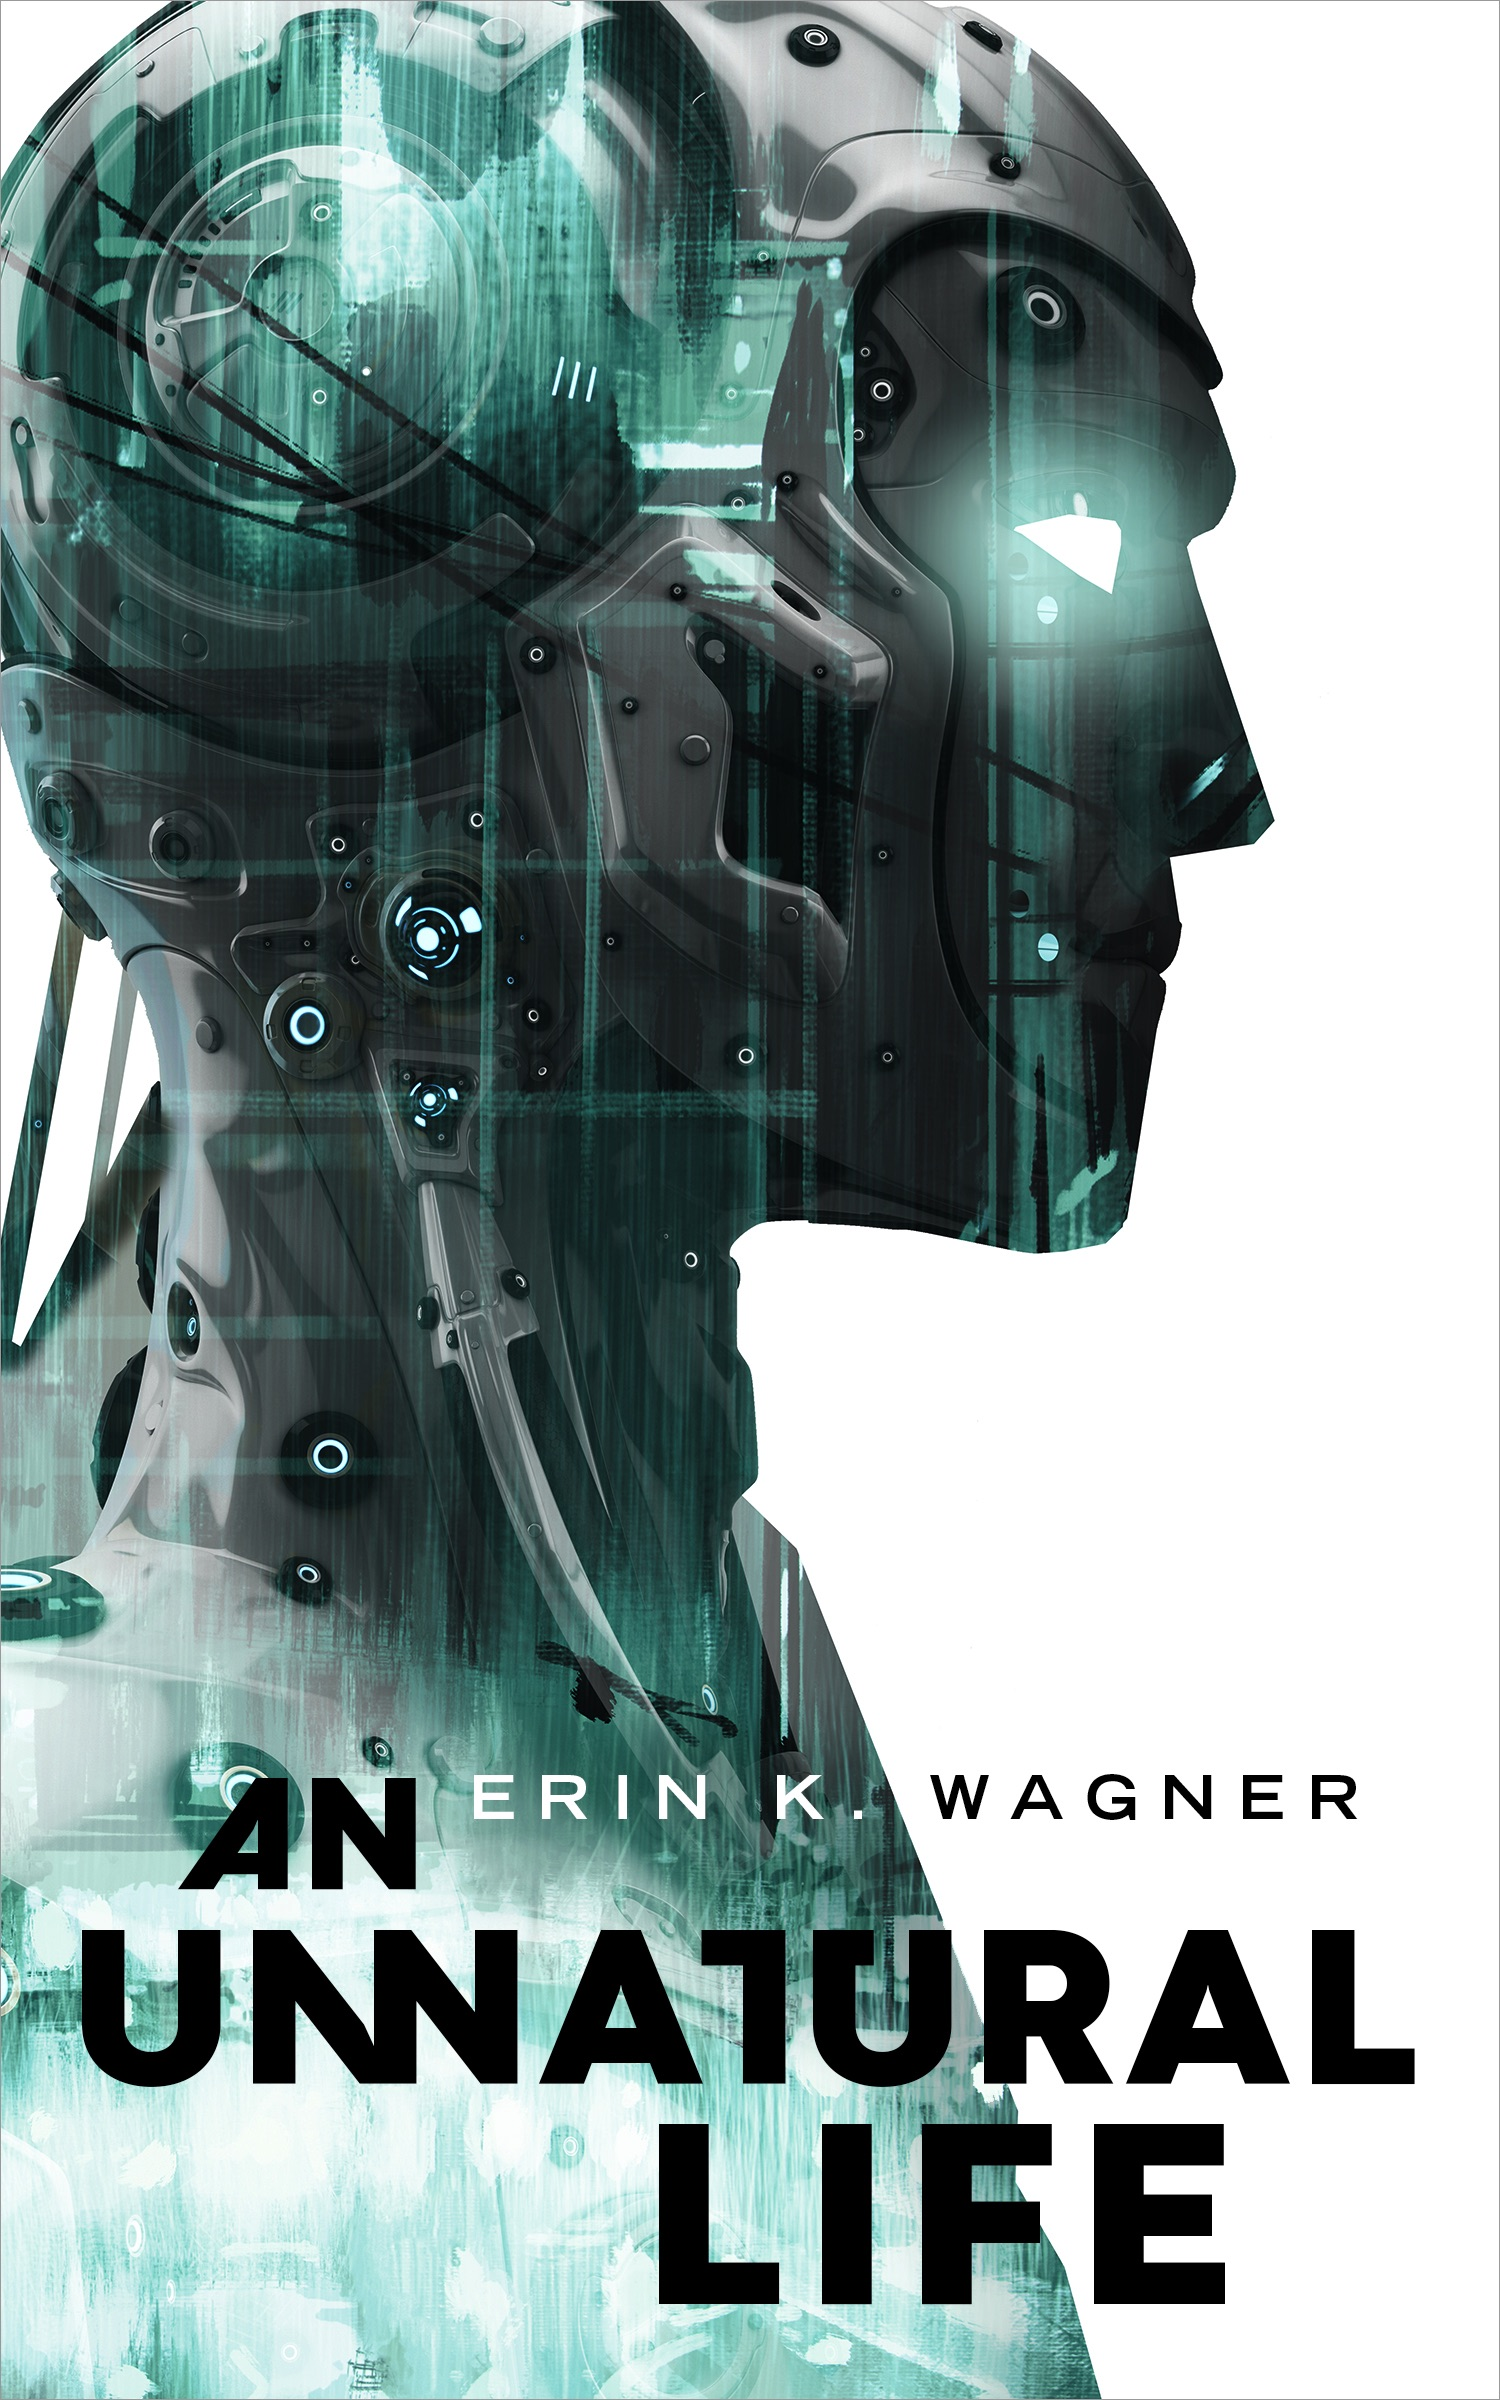 Cover for An Unnatural Life by Erin K Wagner. A green and gray robot depicted on a white background